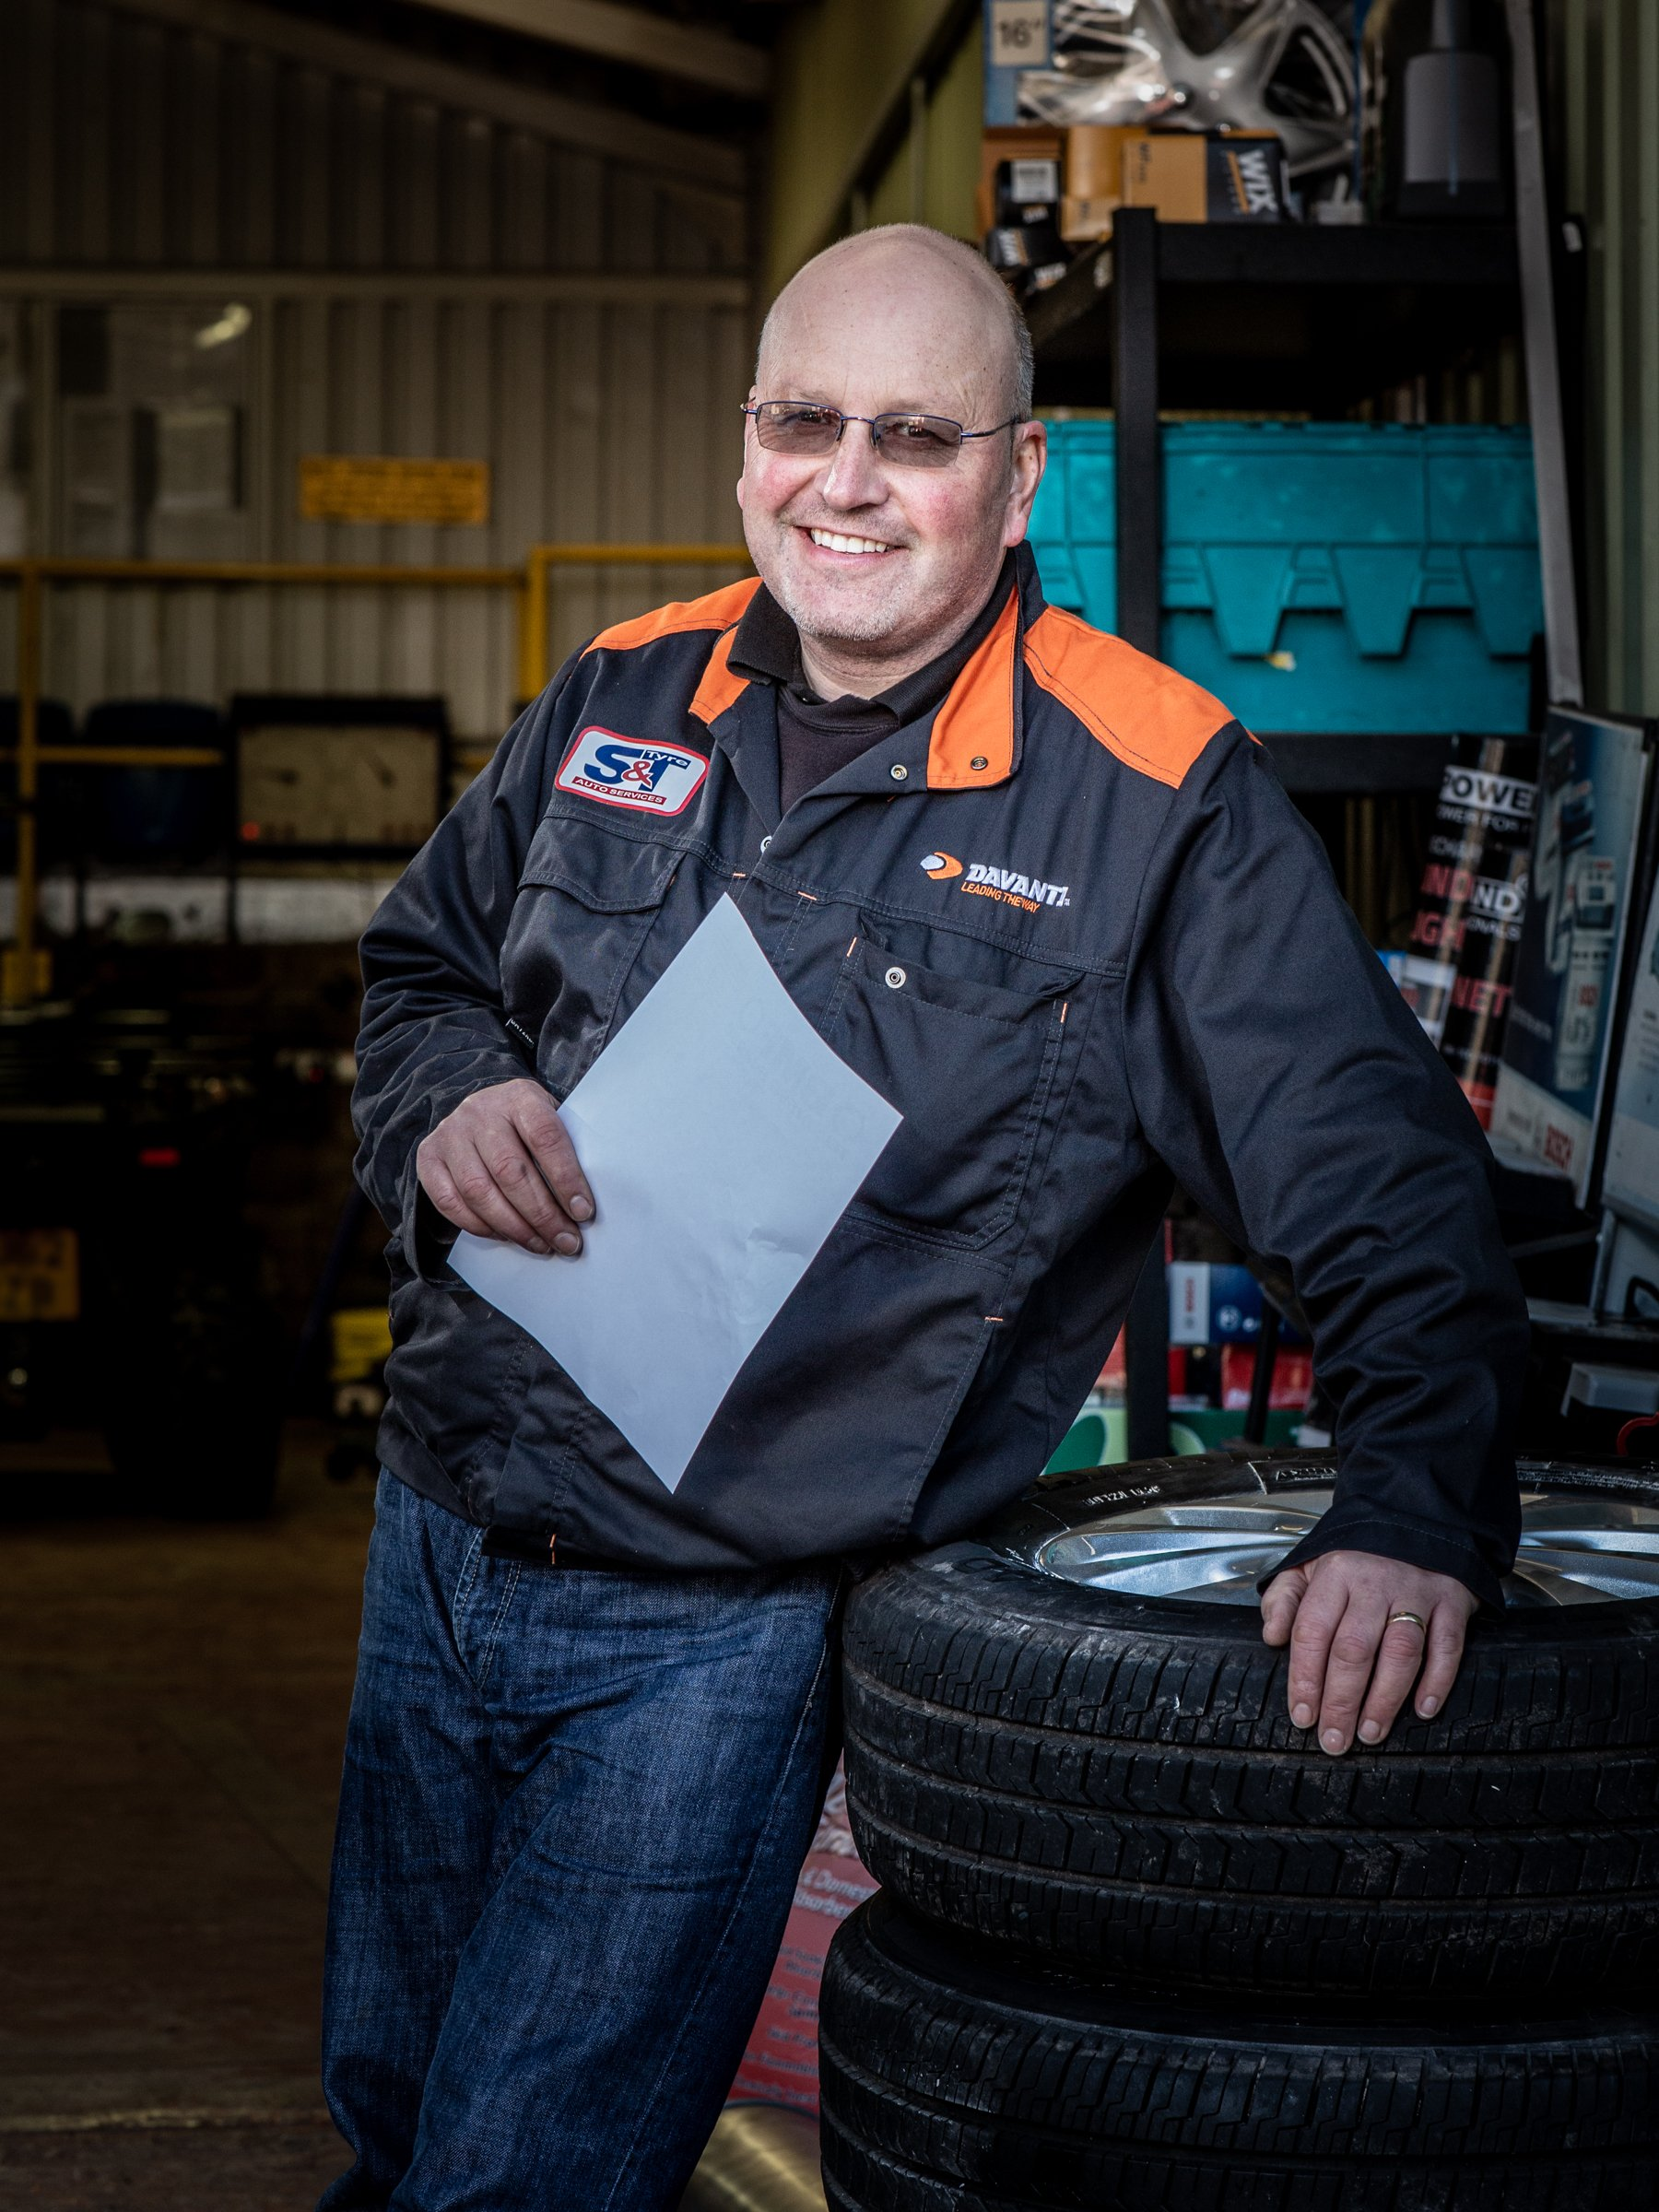 S&T Tyres of Pencoed, by Andrew Davis Photography